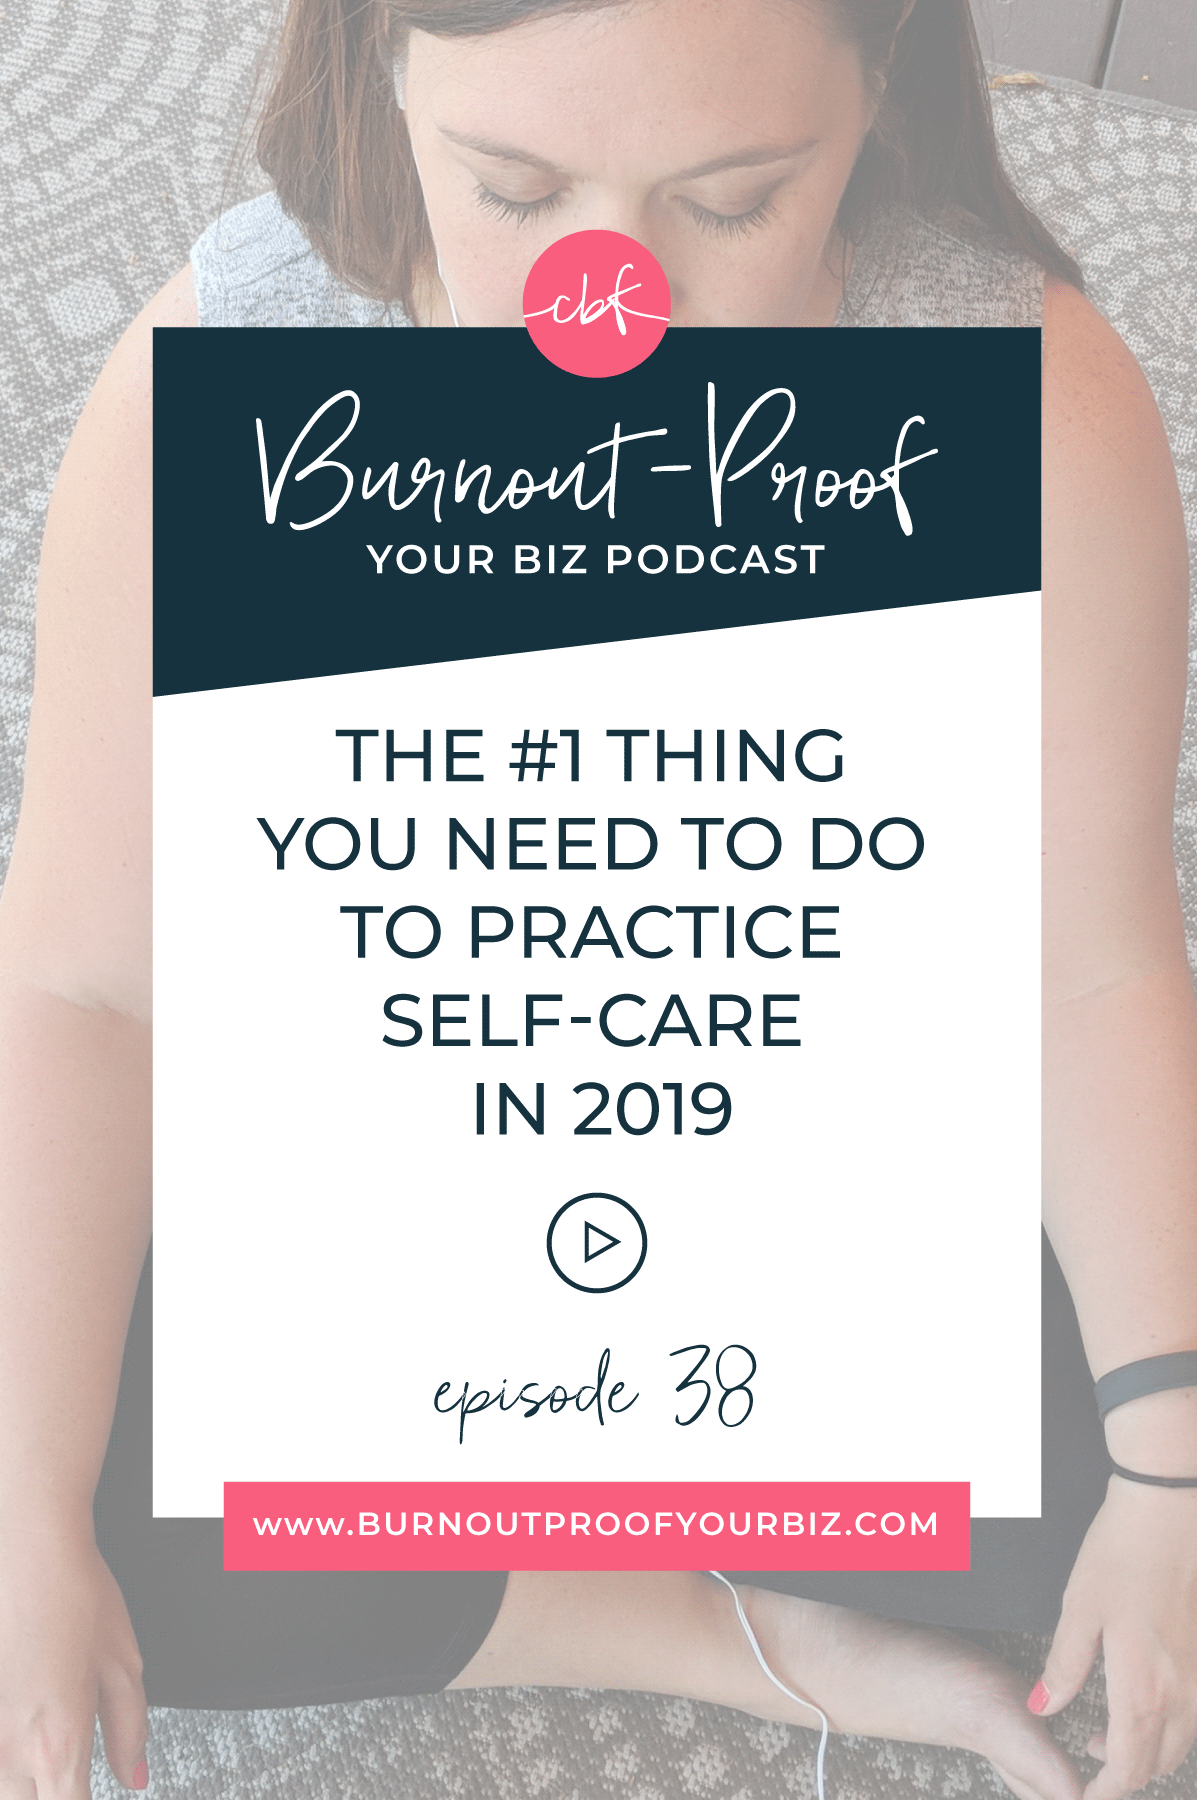 Burnout-Proof Your Biz Podcast with Chelsea B Foster | Episode 038 - The #1 Thing You Need to Do to Practice Self-care in 2019 || Learn how to run your biz and live your dream life on your own terms without the fear of burnout. || Workflow & Productivity Specialist | Self-care | Goals | Goal Setting | Meditation | Hobbies | Sticking to your goals | Work-life Balance | Wellness